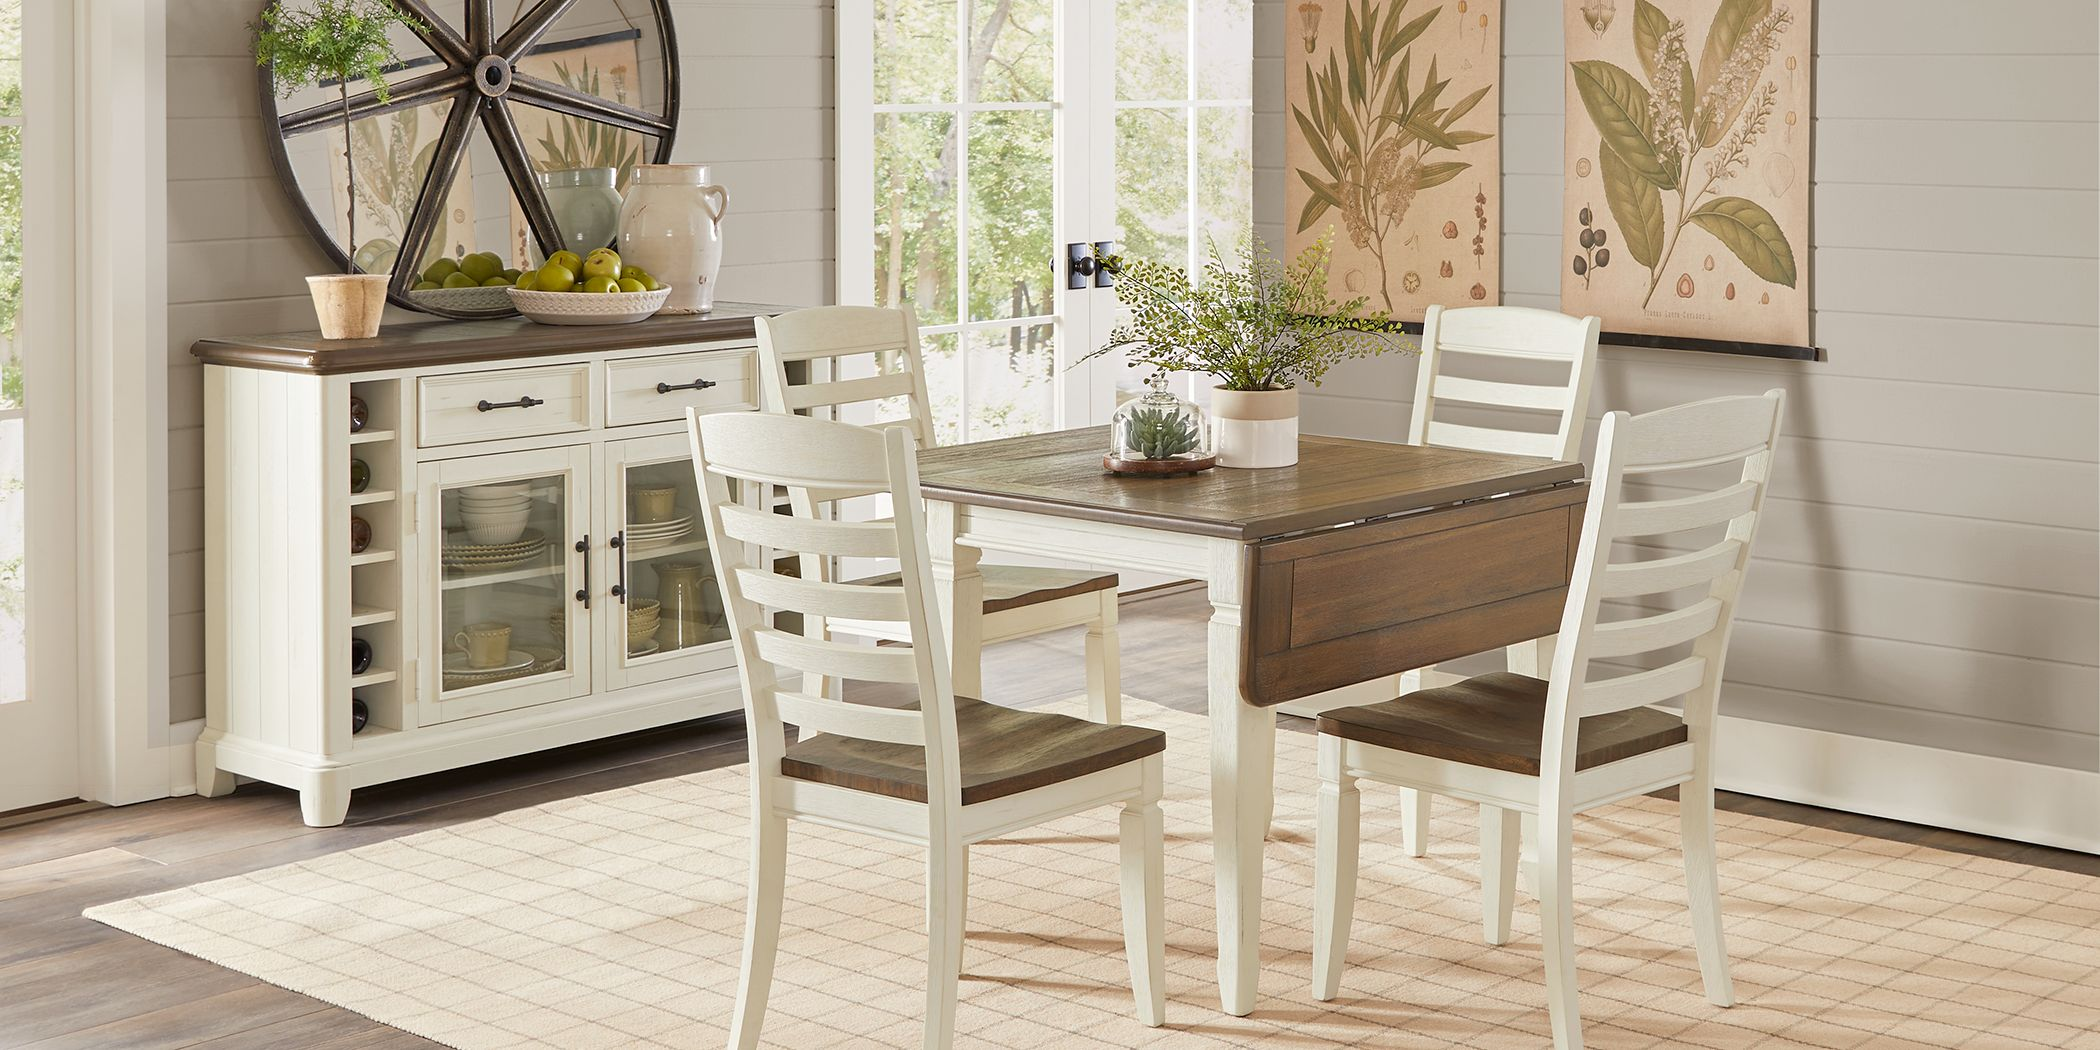 Country Lane Antique White 5 Pc Drop Leaf Dining Room With Ladder Back Chairs Rooms To Go